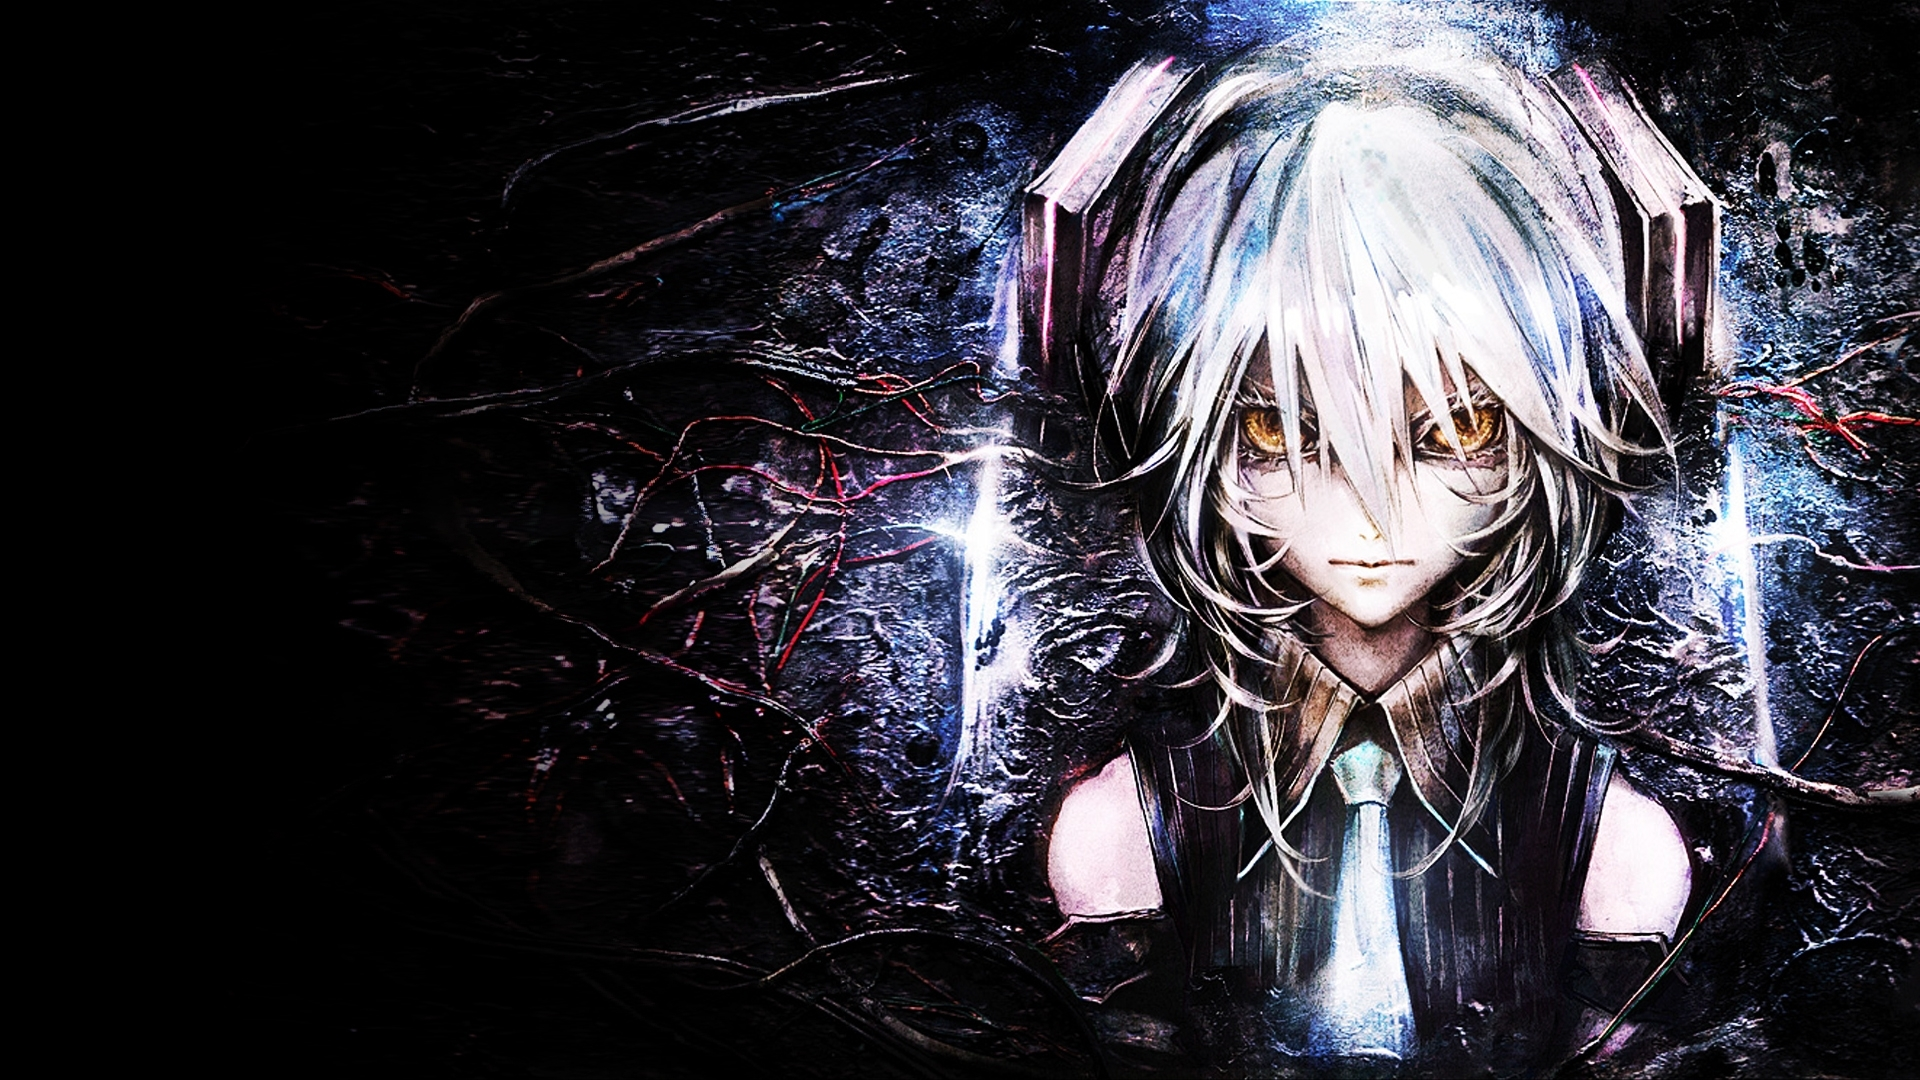 cool anime hd desktop image - hd wallpapers